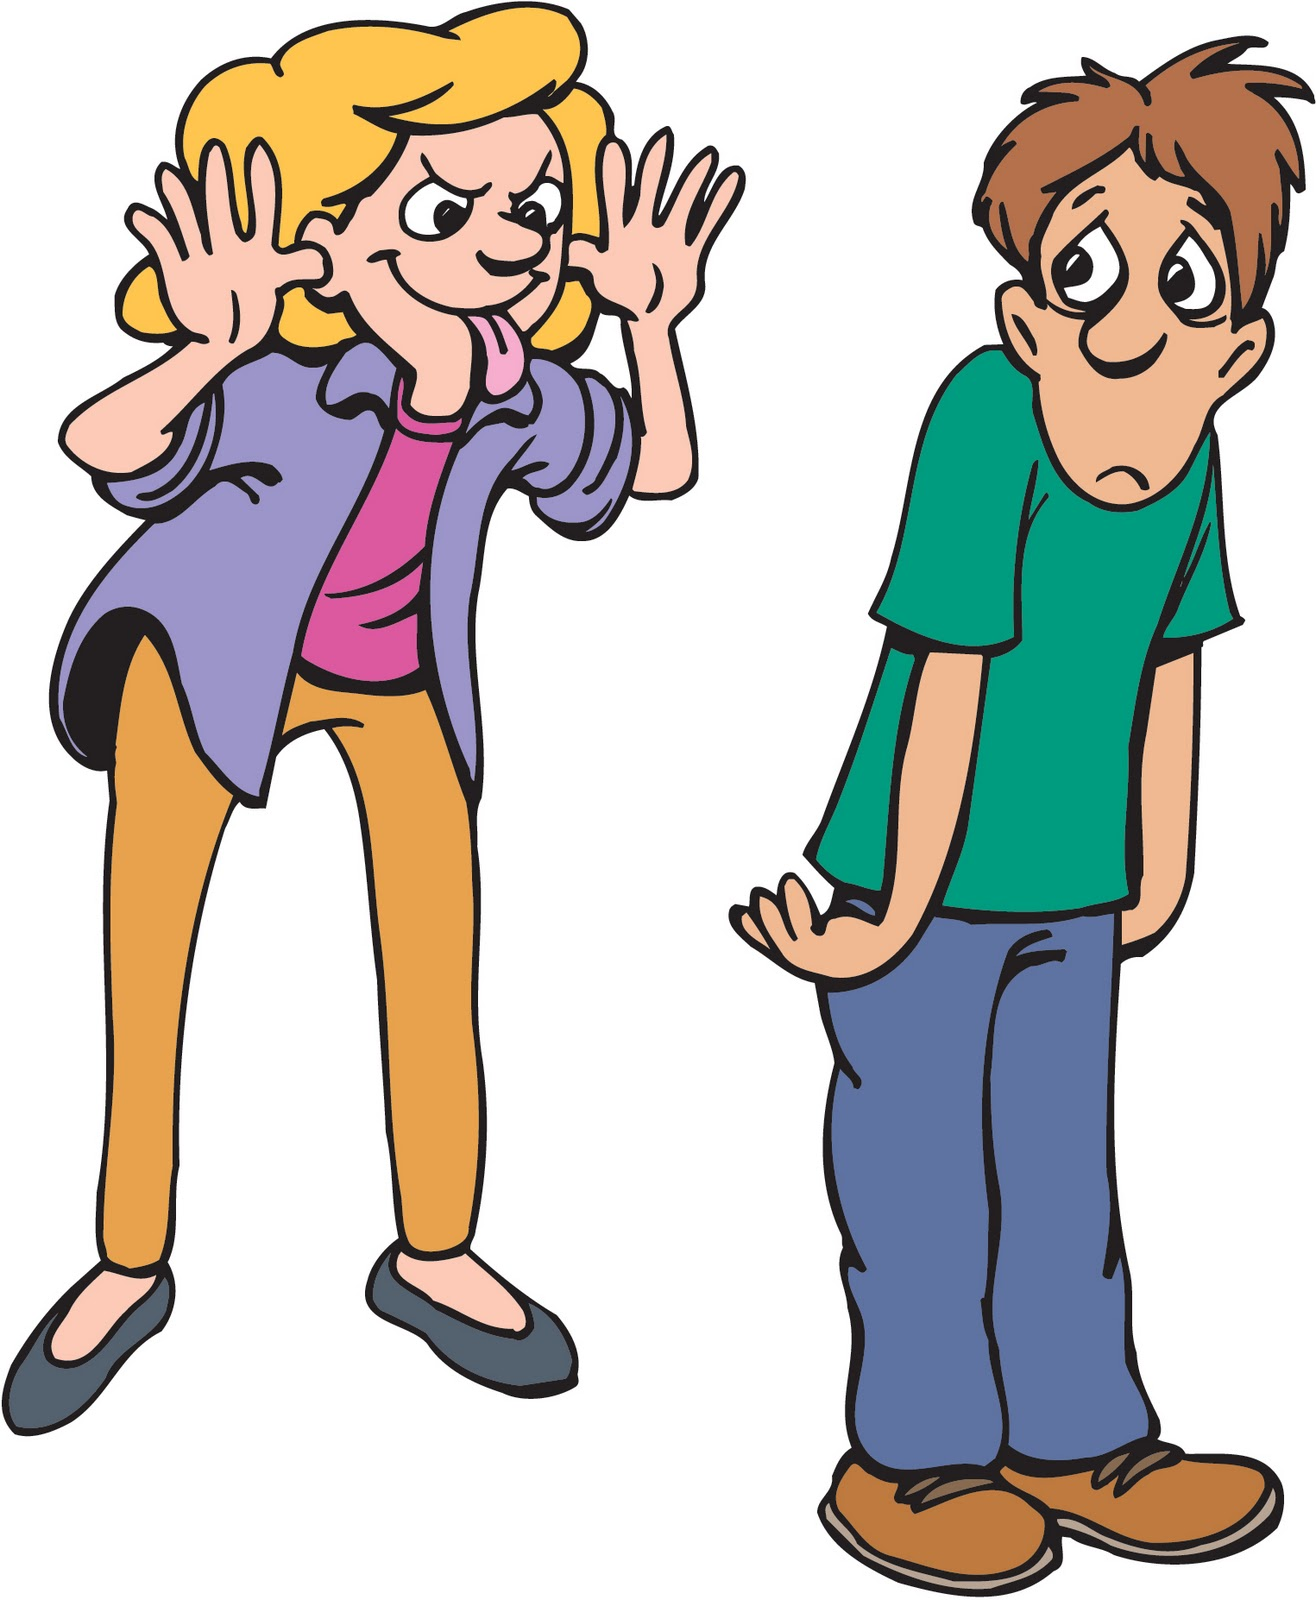 Clipart Of Bullying 20 Free Cliparts